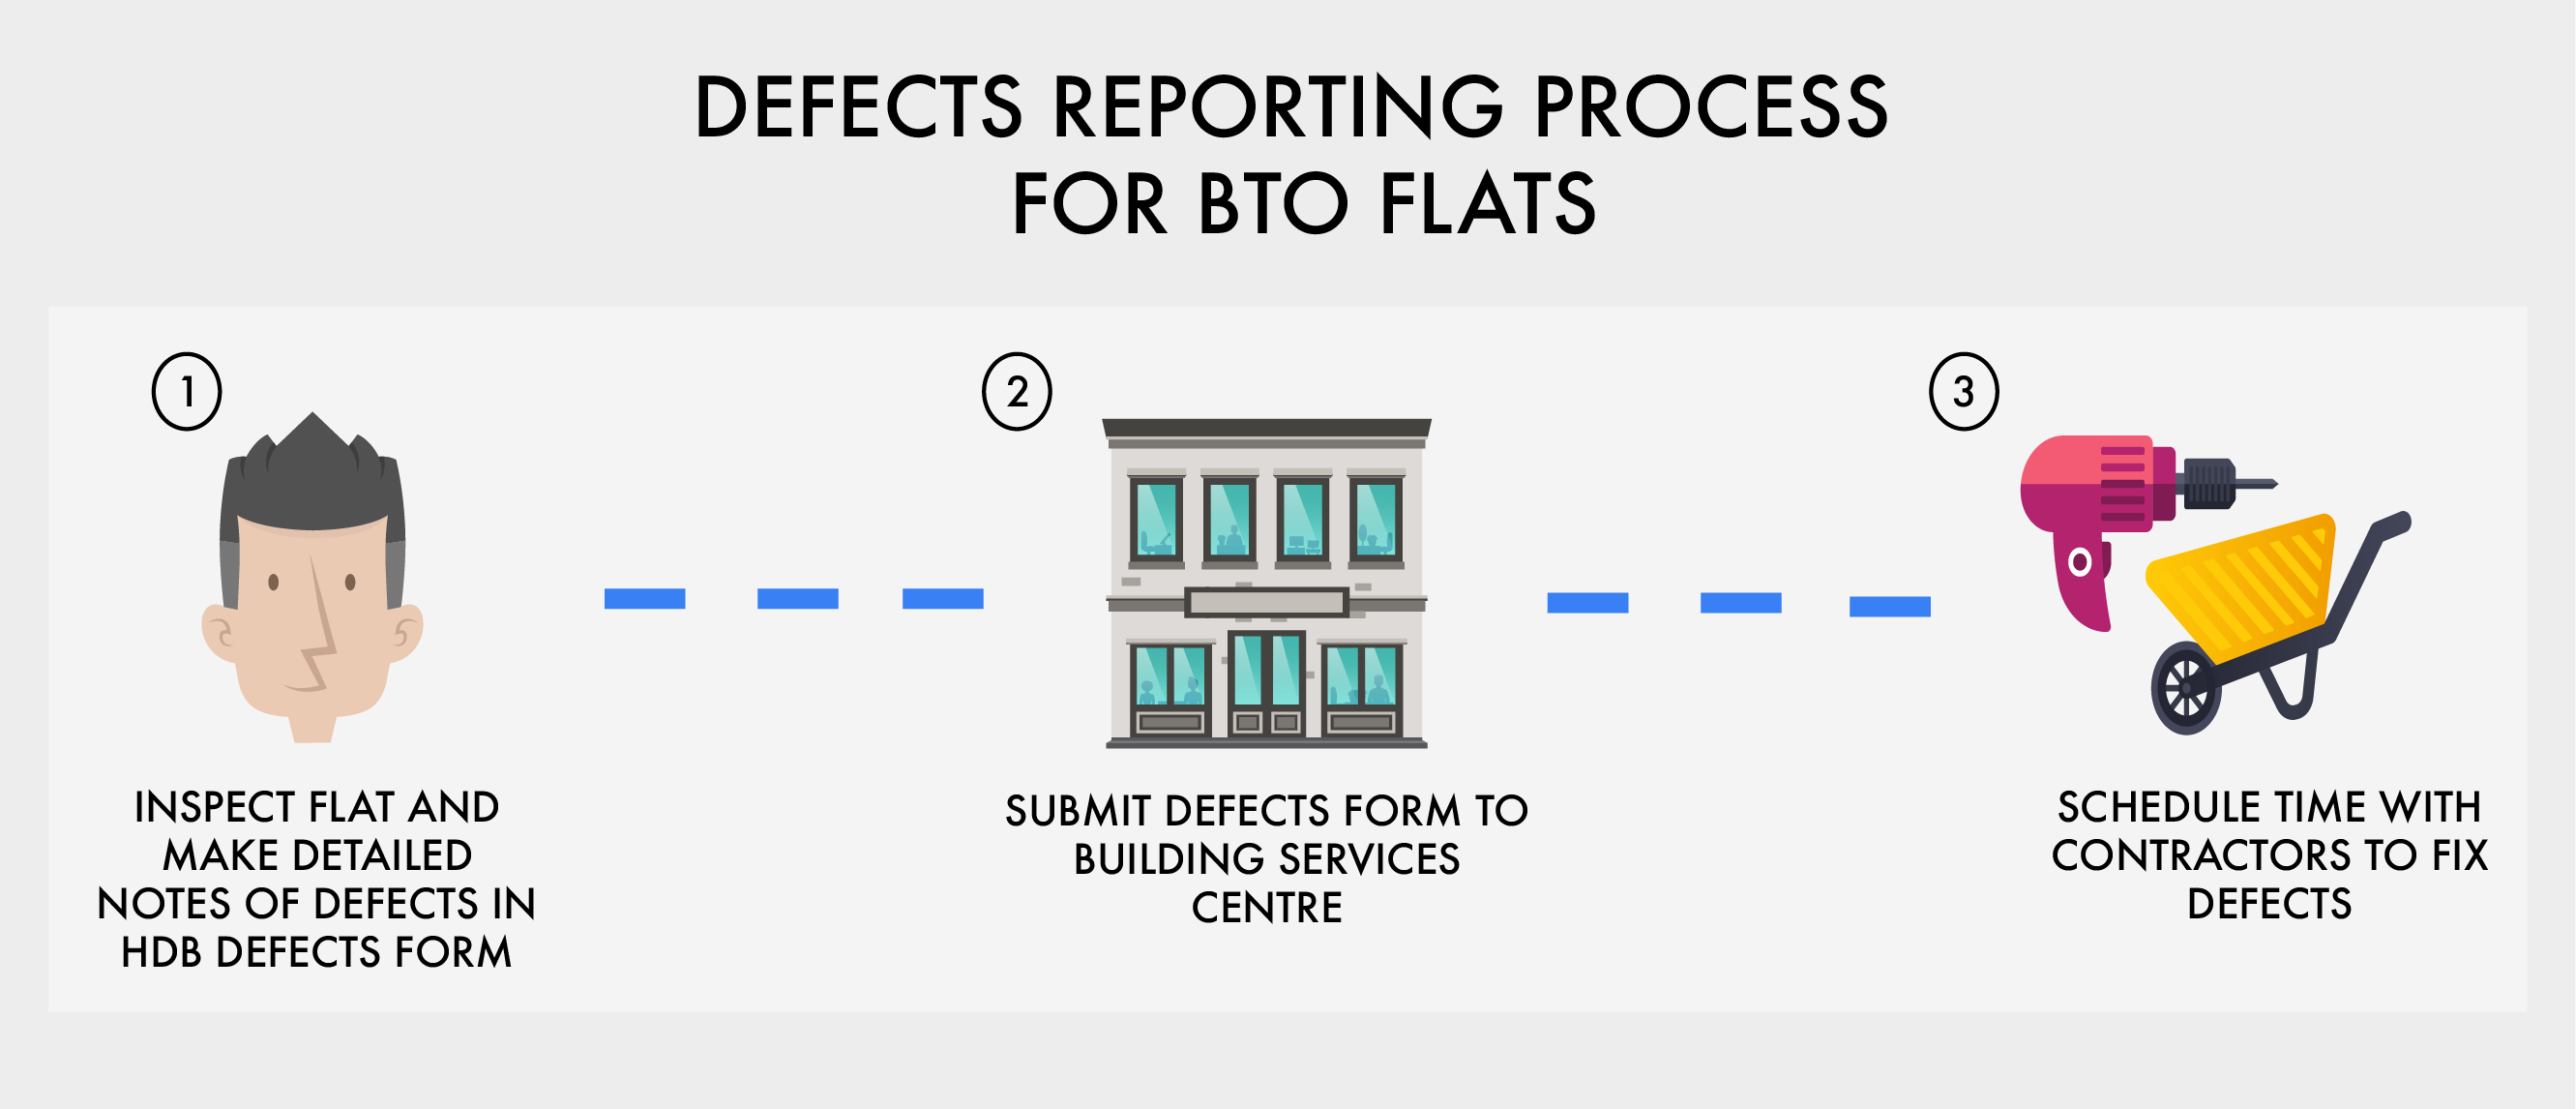 bto-defects-process